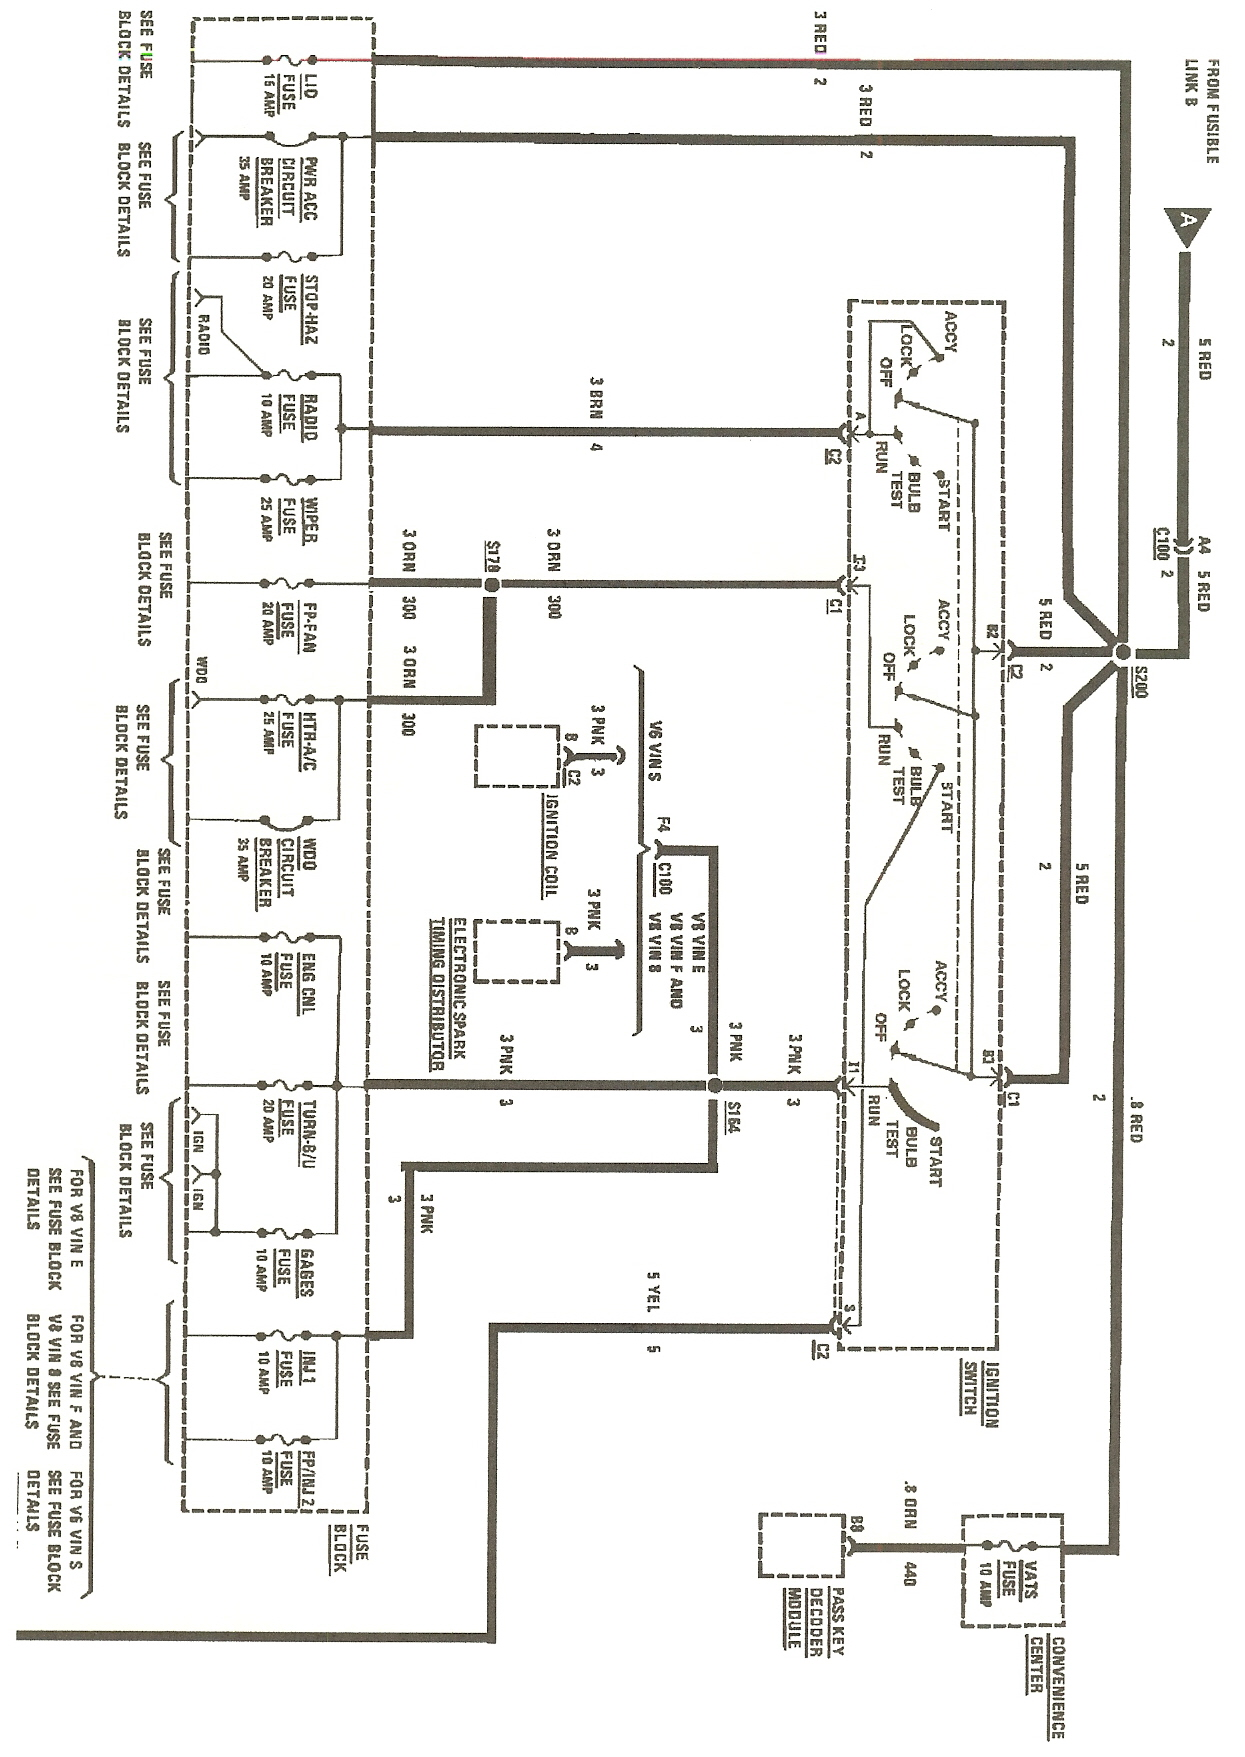 2011 01 08_012719_ignition_switch wiring diagram for gm steering column the 1947 present 1970 gm steering column wiring diagram at soozxer.org